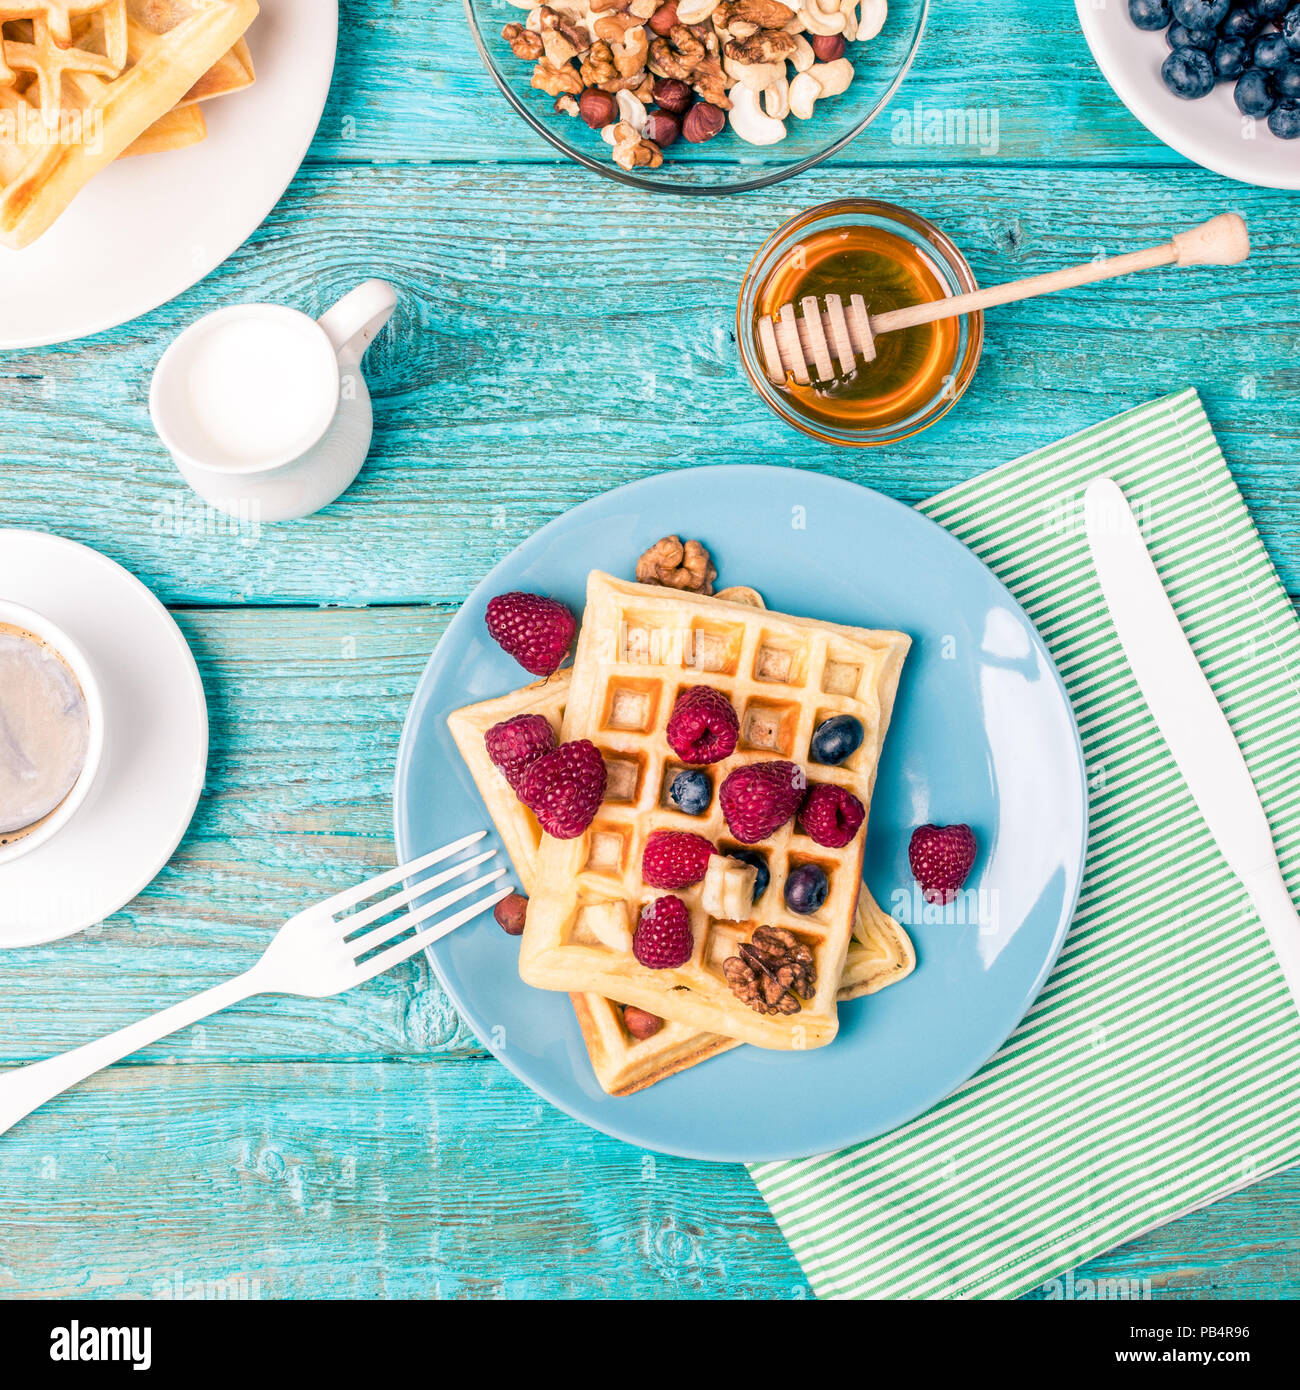 Homemade waffles with raspberries and blueberry - Stock Image